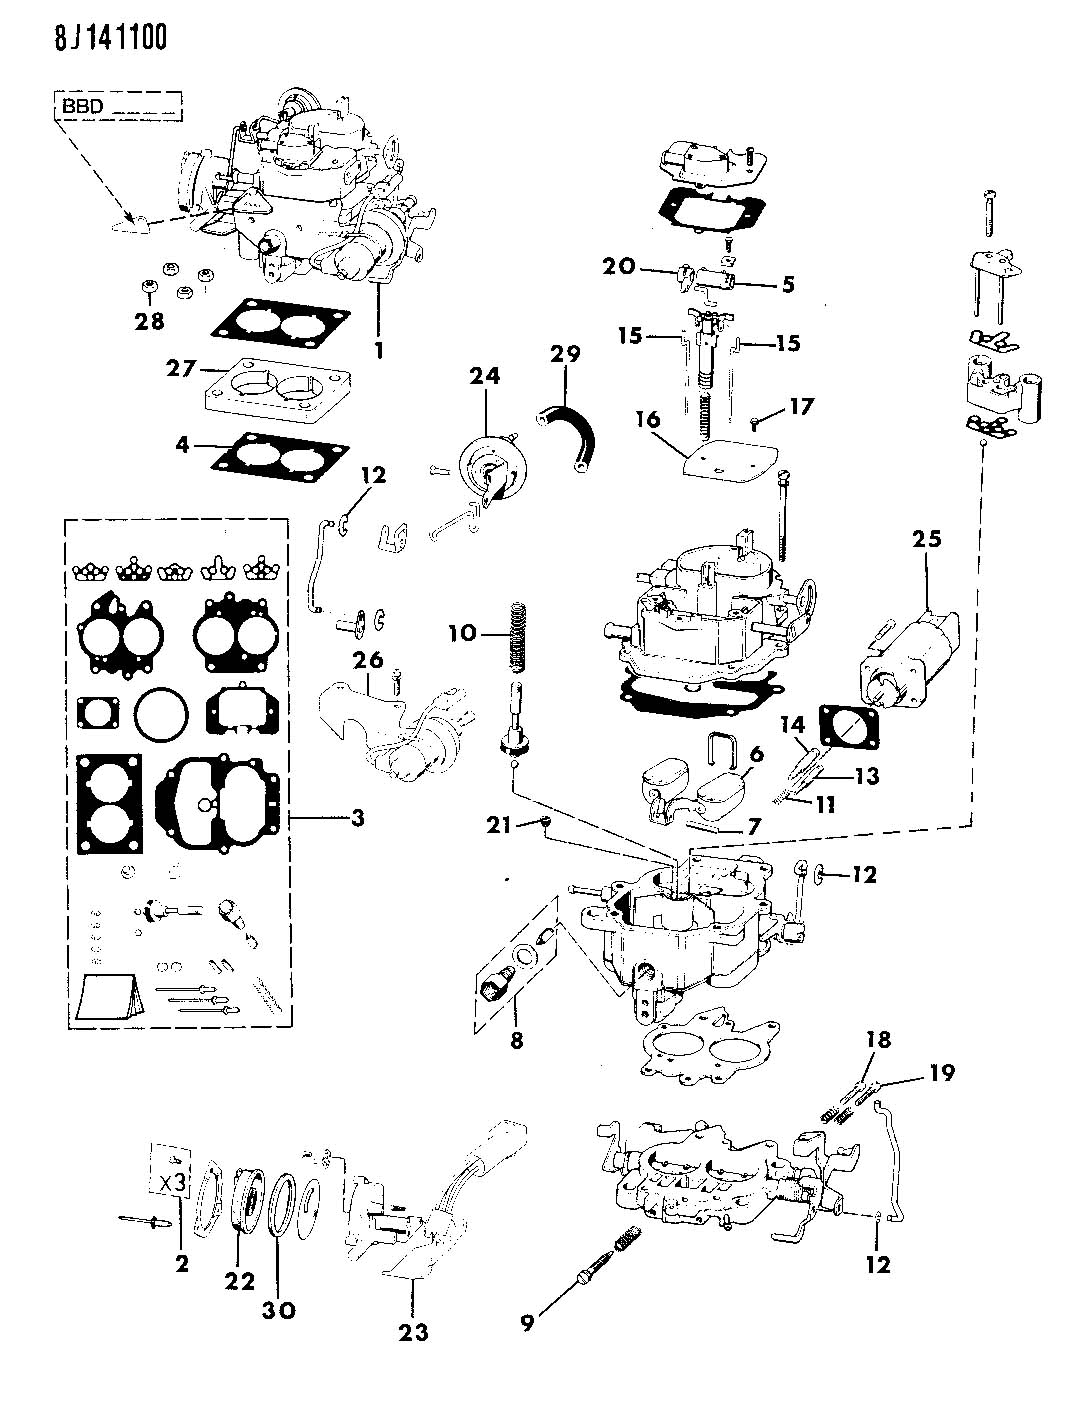 1987 Jeep Wrangler 4 2l Engine Diagram, 1987, Free Engine